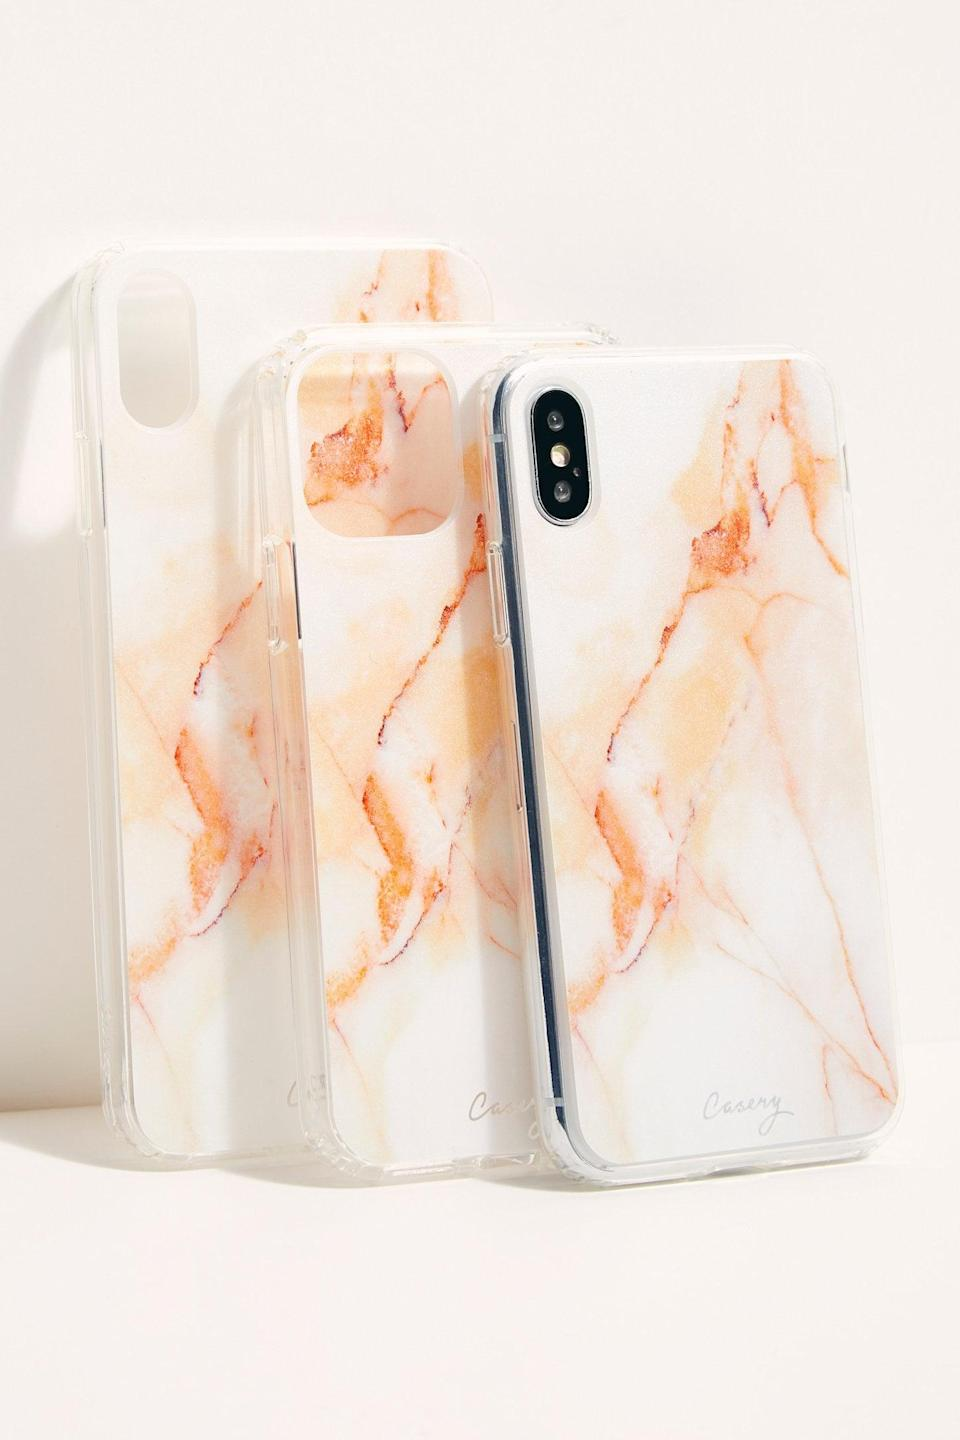 """<p>They'll love this pretty <a href=""""https://www.popsugar.com/buy/Cloudy-Marble-Phone-Case-524367?p_name=Cloudy%20Marble%20Phone%20Case&retailer=freepeople.com&pid=524367&price=32&evar1=savvy%3Aus&evar9=46975777&evar98=https%3A%2F%2Fwww.popsugar.com%2Fphoto-gallery%2F46975777%2Fimage%2F46976036%2FCloudy-Marble-Phone-Case&list1=gifts%2Cgift%20guide&prop13=api&pdata=1"""" class=""""link rapid-noclick-resp"""" rel=""""nofollow noopener"""" target=""""_blank"""" data-ylk=""""slk:Cloudy Marble Phone Case"""">Cloudy Marble Phone Case</a> ($32).</p>"""